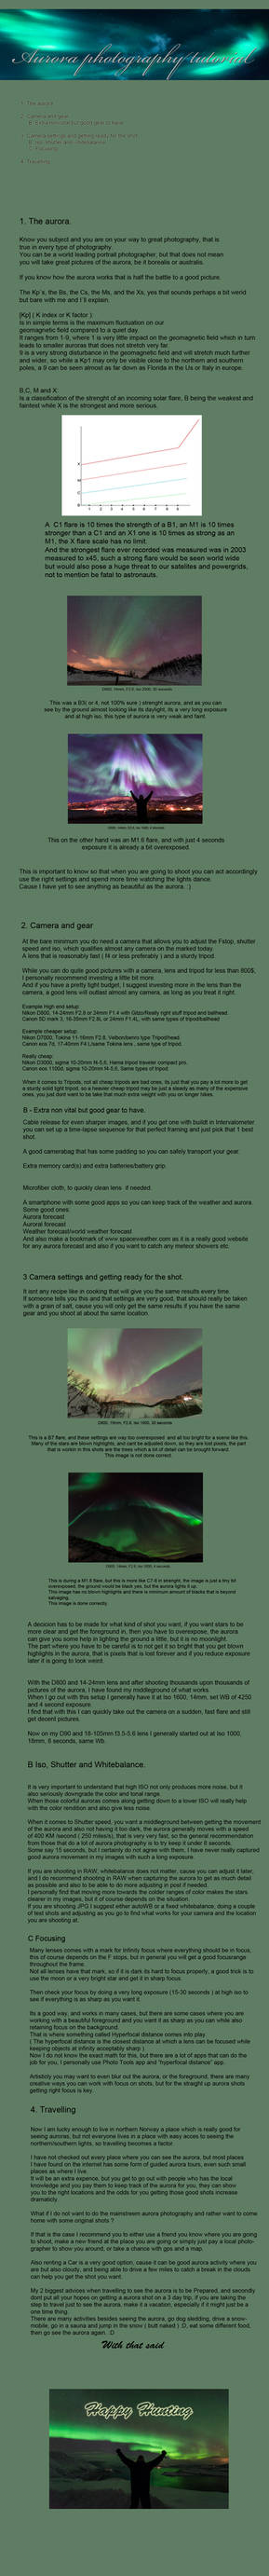 Aurora Photography Tutorial